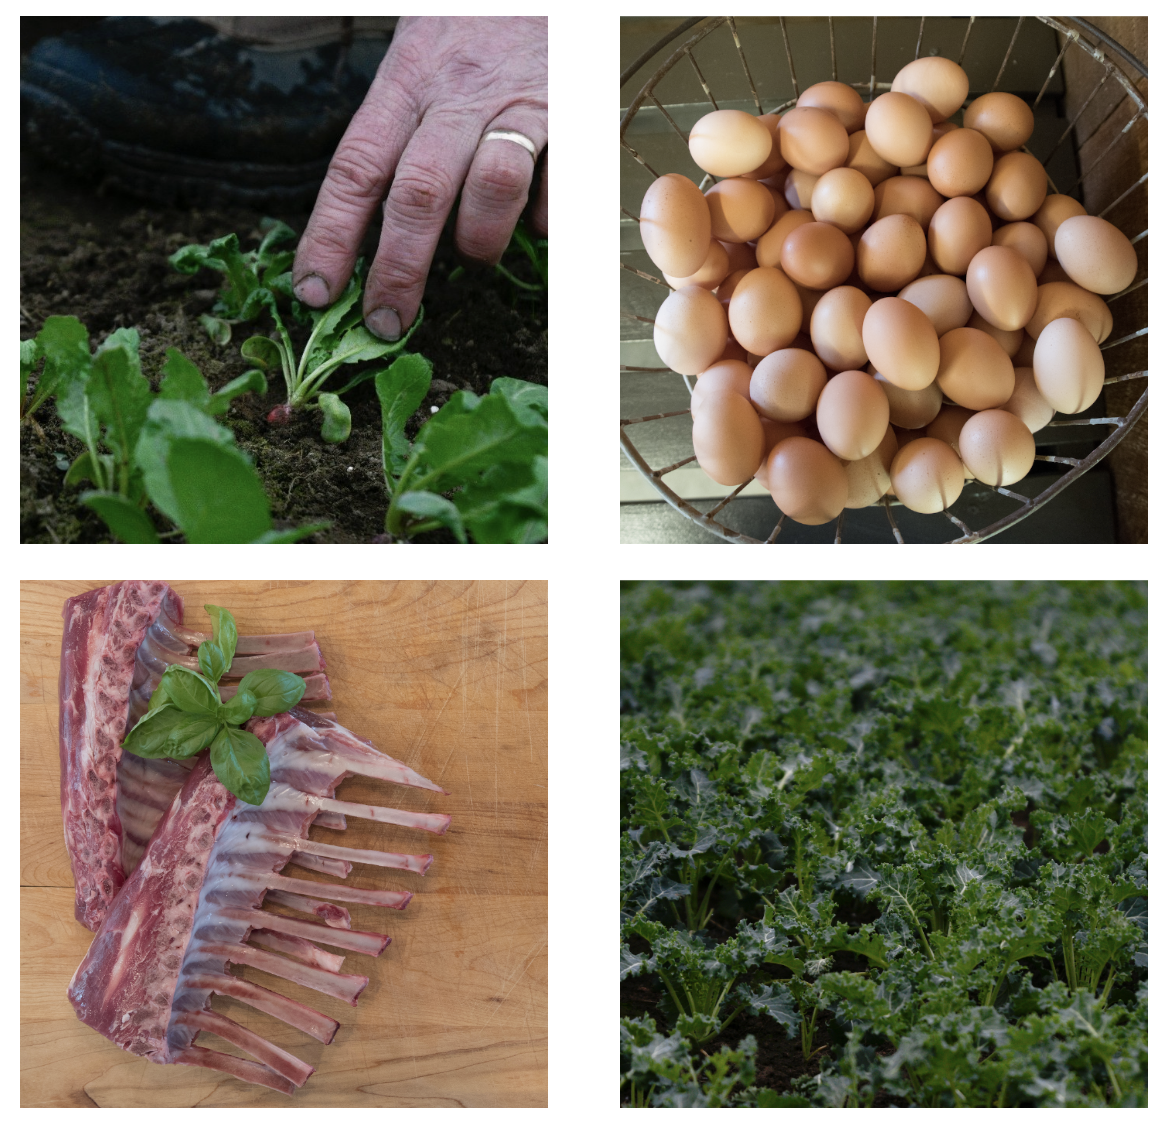 - Get 10% EXTRA BUCKS for your 2018 market purchases and help support the farm bring you tons of fresh produce and meats by participating in our Farm Membership Program.Your membership is like a CSA - you may use your EXTRA BUCKS for everything in the market including Easter Egg Radishes (coming soon!), eggs, all-natural meats and dark, leafy greens.How it works:1. Buy the level that works best for you. You may do this at the store or online here2. You get a card that works much like a debit card. It will be pre-programmed with your membership amount. If you purchase your membership online, your card will be ready and waiting for you at the market for the next time you shop.3. Your card will have your EXTRA BUCKS already added.Level $150 will have $165 on the cardLevel $300 will have $330 on the cardLevel $500 will have $550 on the card4. Just use your card to make purchases at the store until all your funds are used.